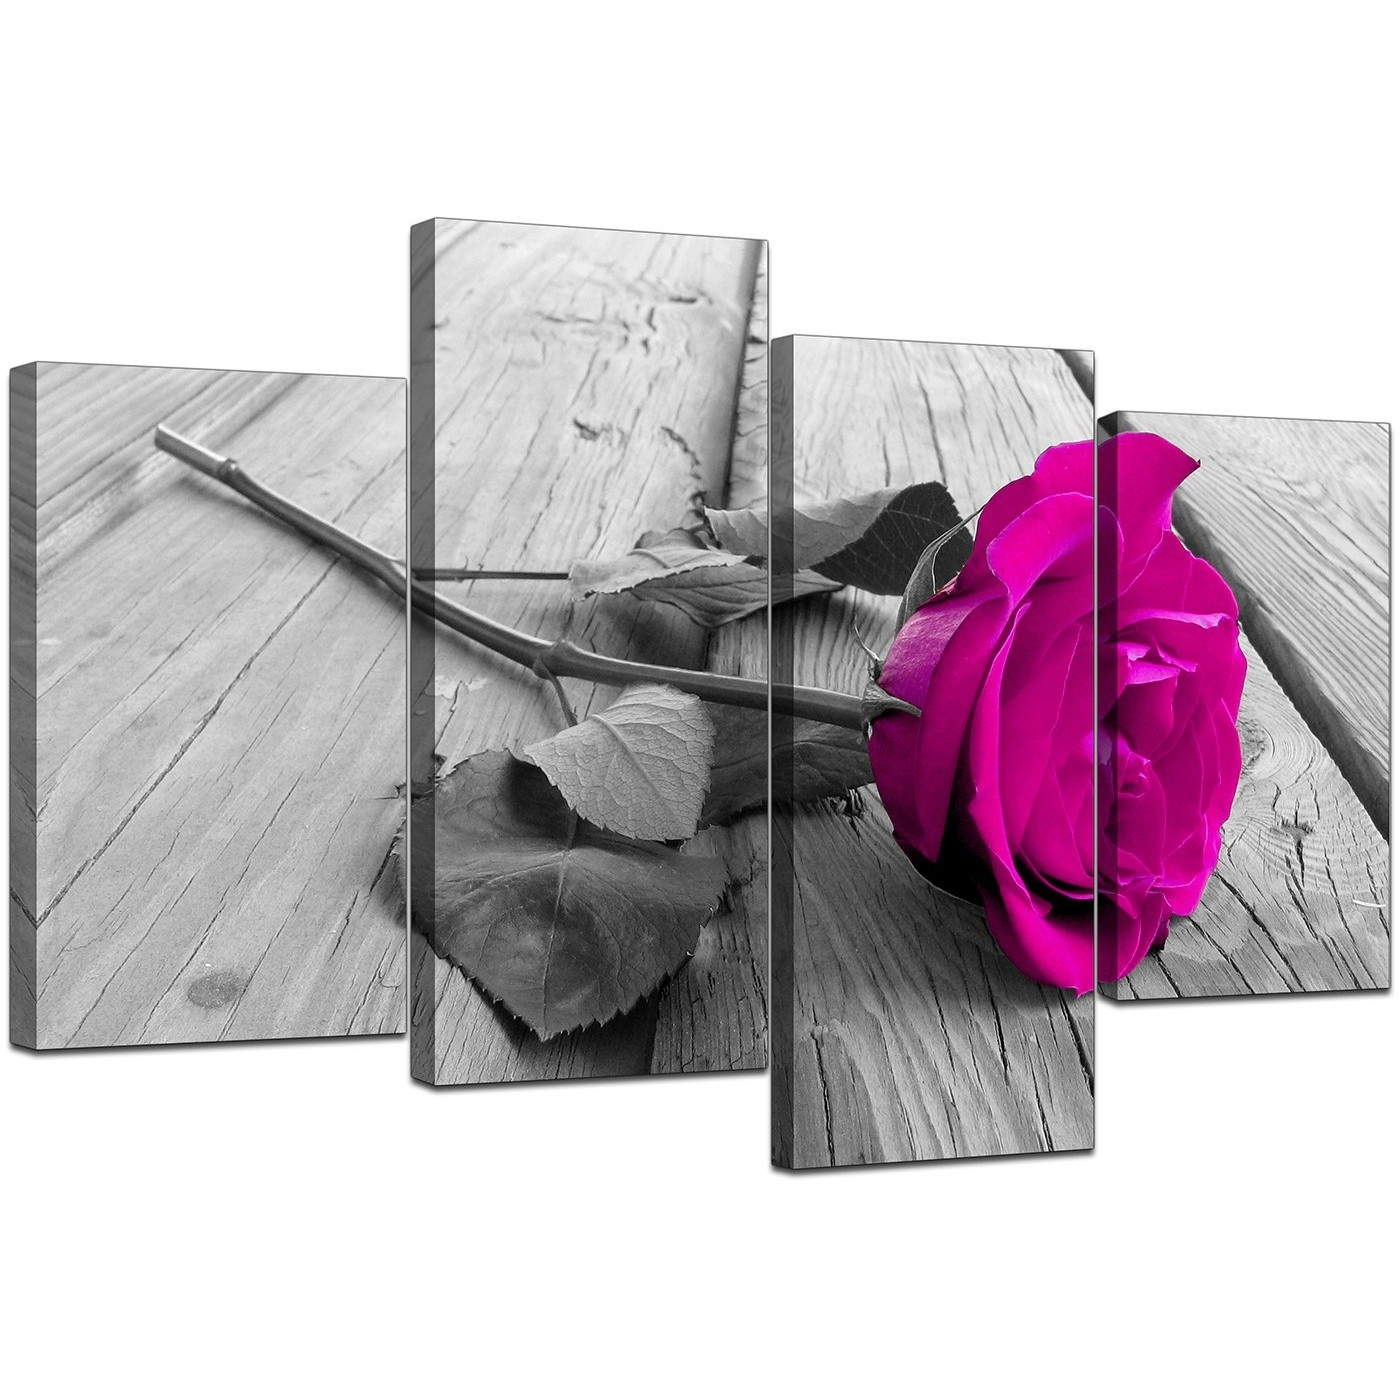 Canvas Prints Of Pink Rose In Black & White For Your Bedroom With Regard To Most Popular Pink Canvas Wall Art (View 10 of 15)